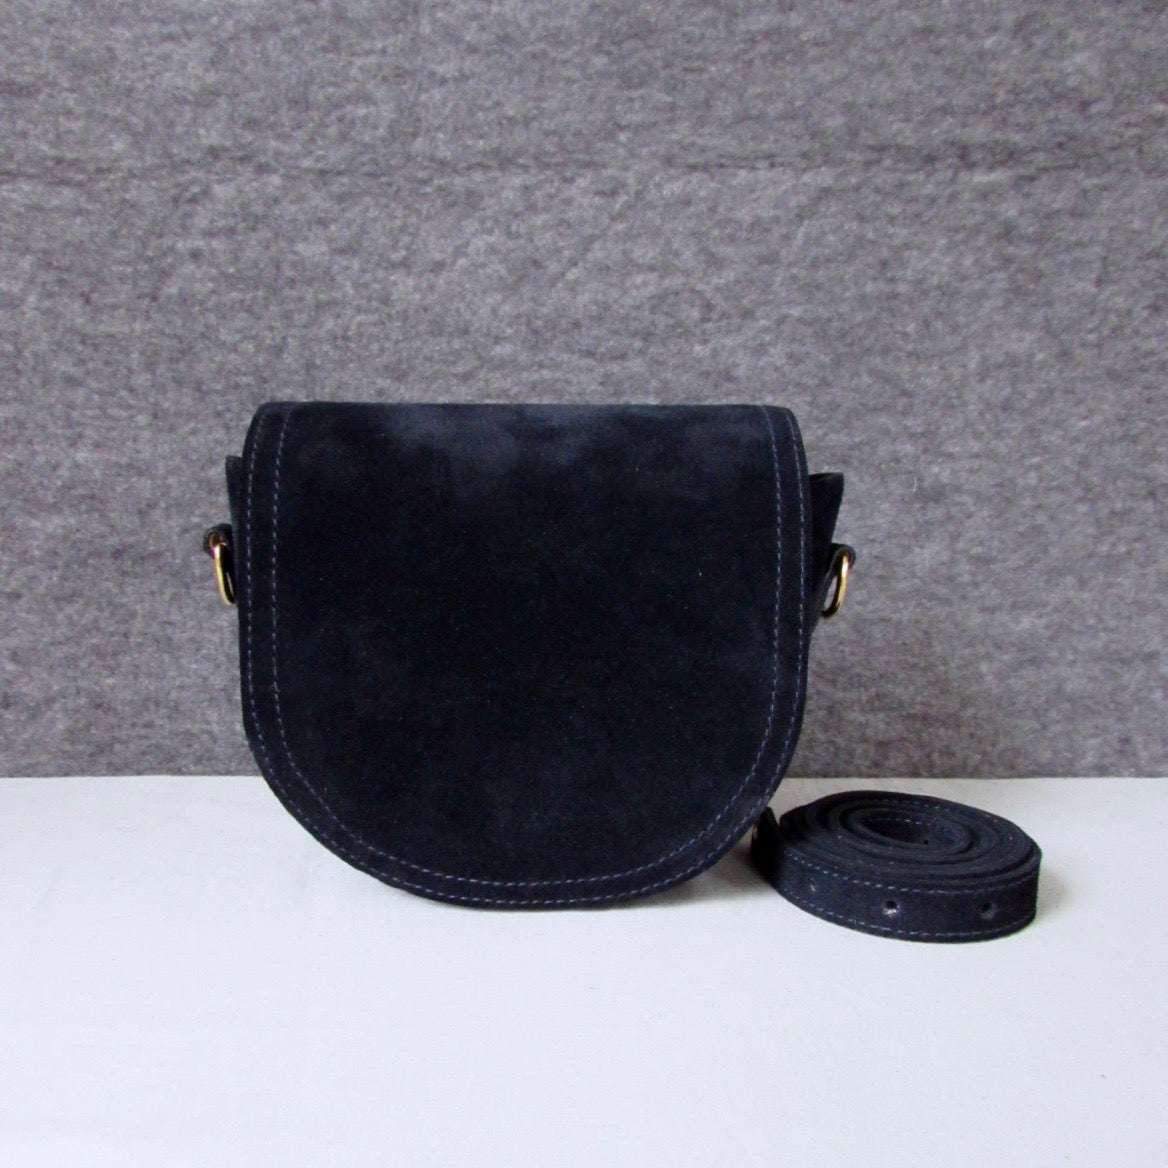 Mini Saddle in navy suede